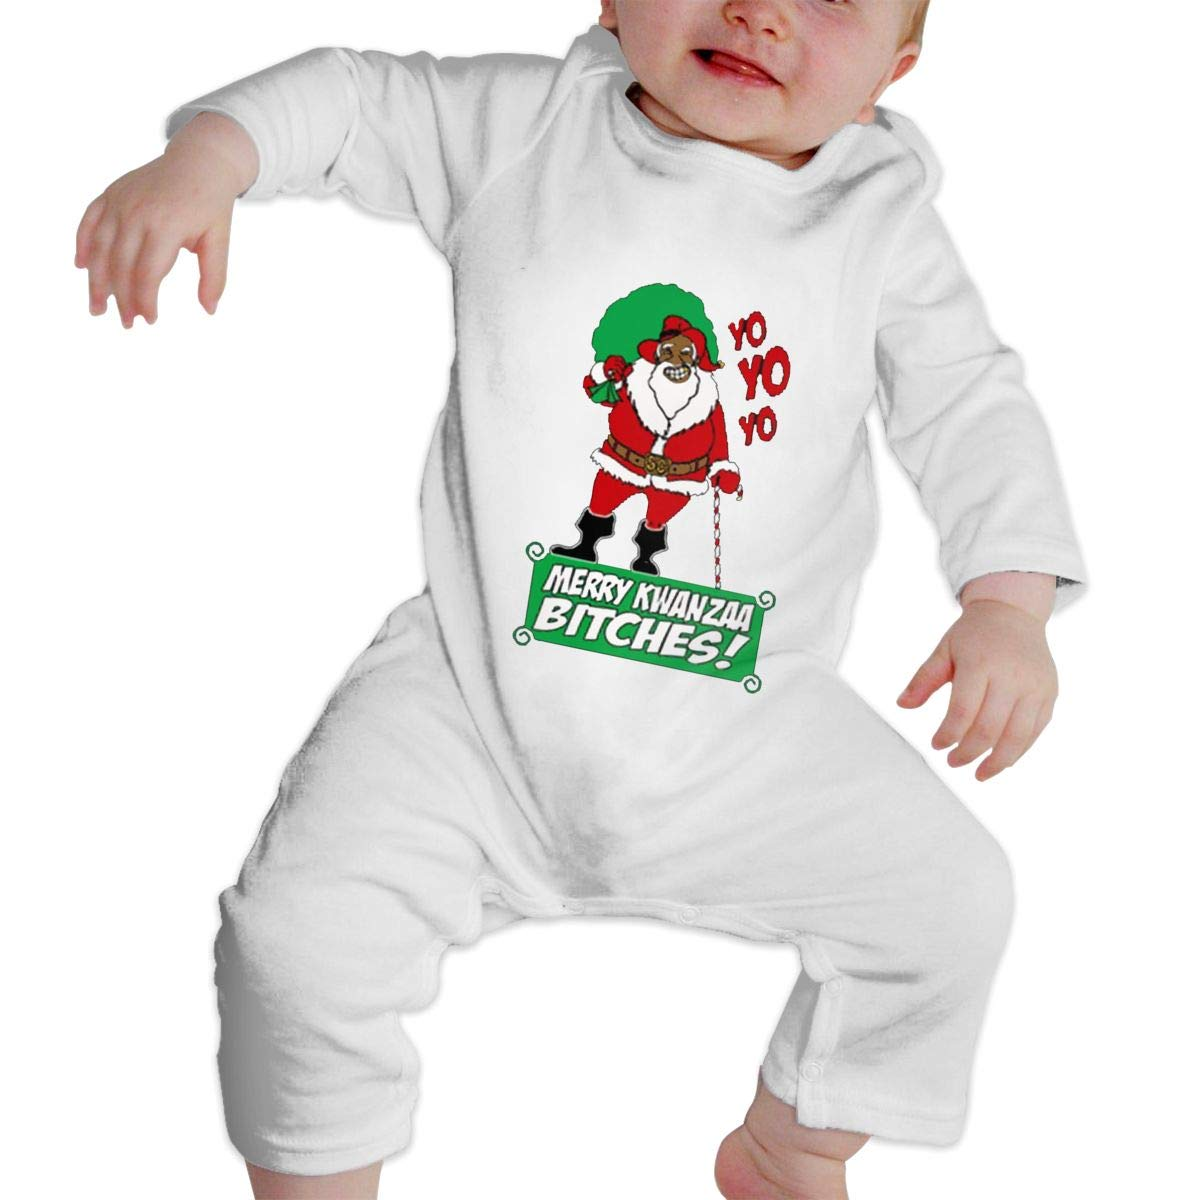 Fasenix Marry Kwanzaa Newborn Baby Boy Girl Romper Jumpsuit Long Sleeve Bodysuit Overalls Outfits Clothes